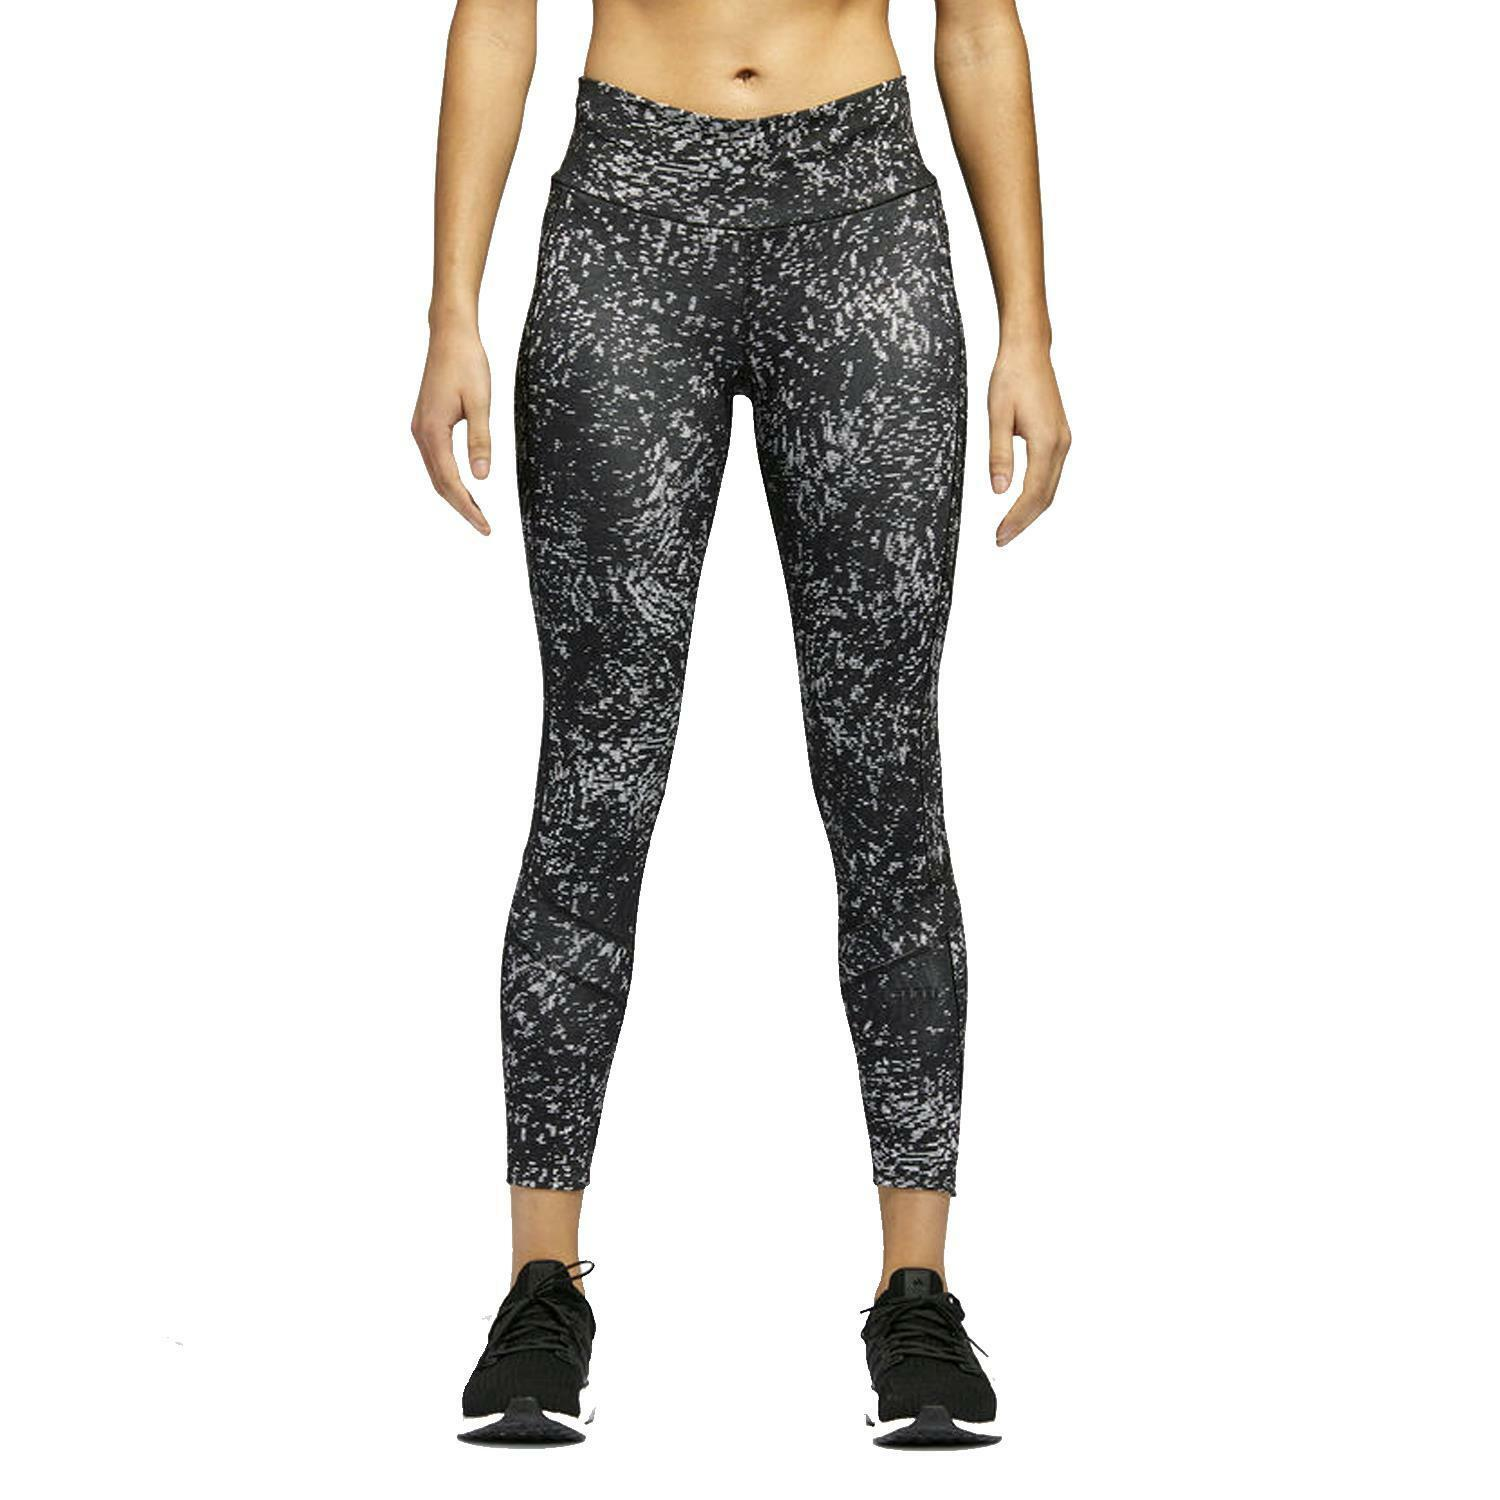 Adidas Women's How We Do 7 8 Printed Running  Leggings  factory direct sales